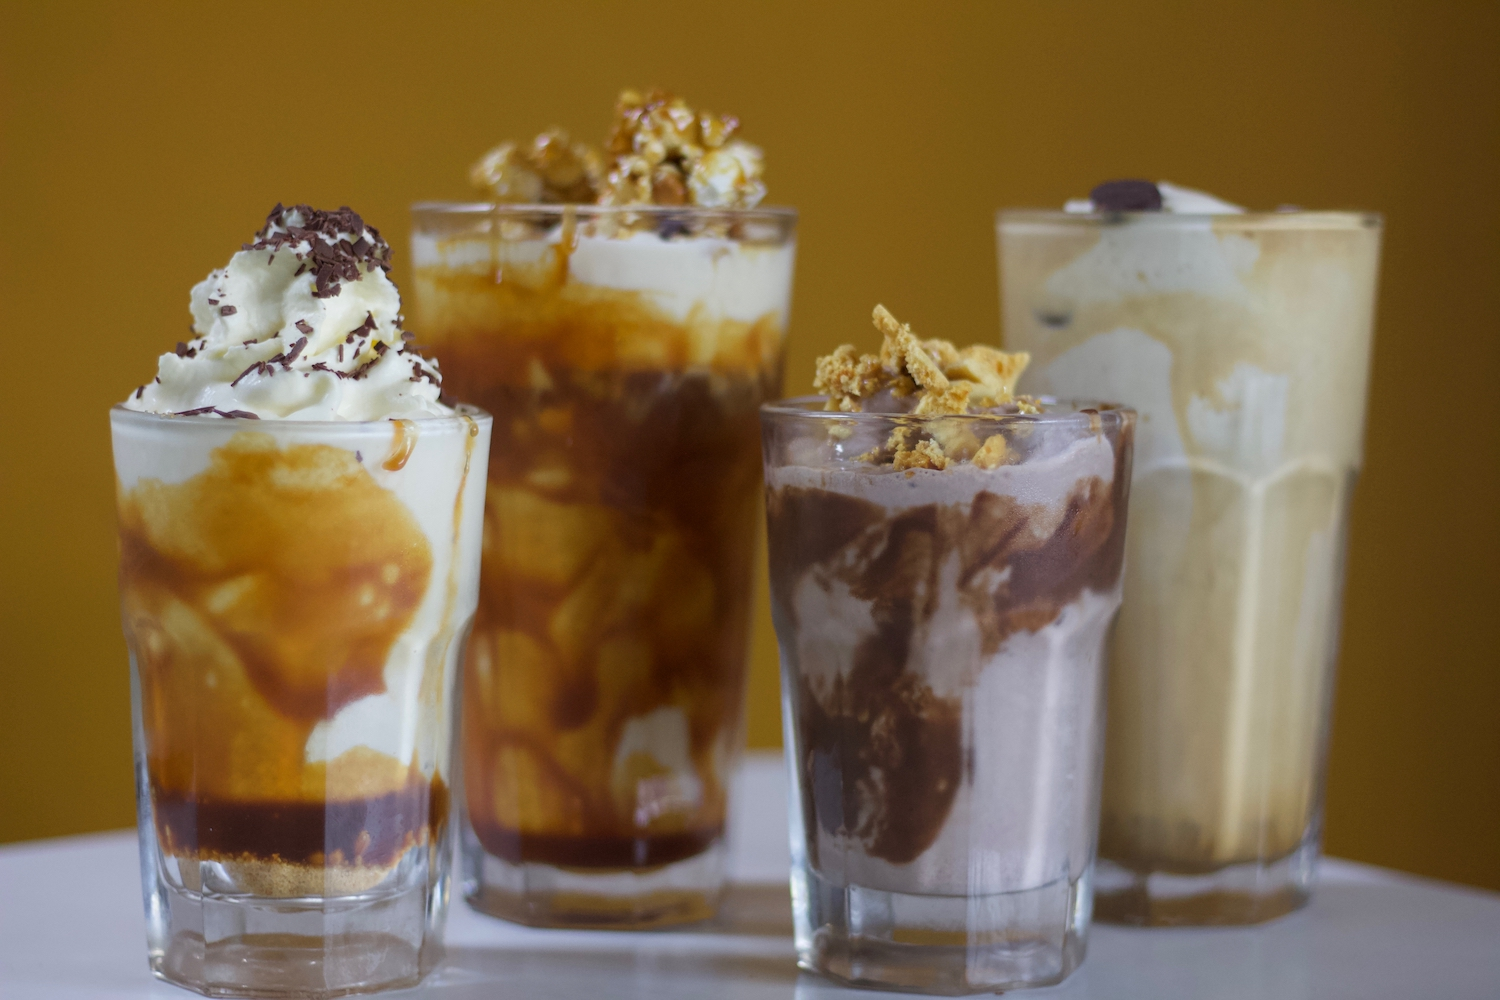 30pp burgers & shakes - to shareonion rings, chips, mac n' cheese balls, chicken wings & saladchoice ofcheeseburger, vegetarian burger, southern fried chicken burgeror pulled pork burgerone of our famous thickshakeschocolate, malteser, mars bar cheesecake or raspberry & white chocolate